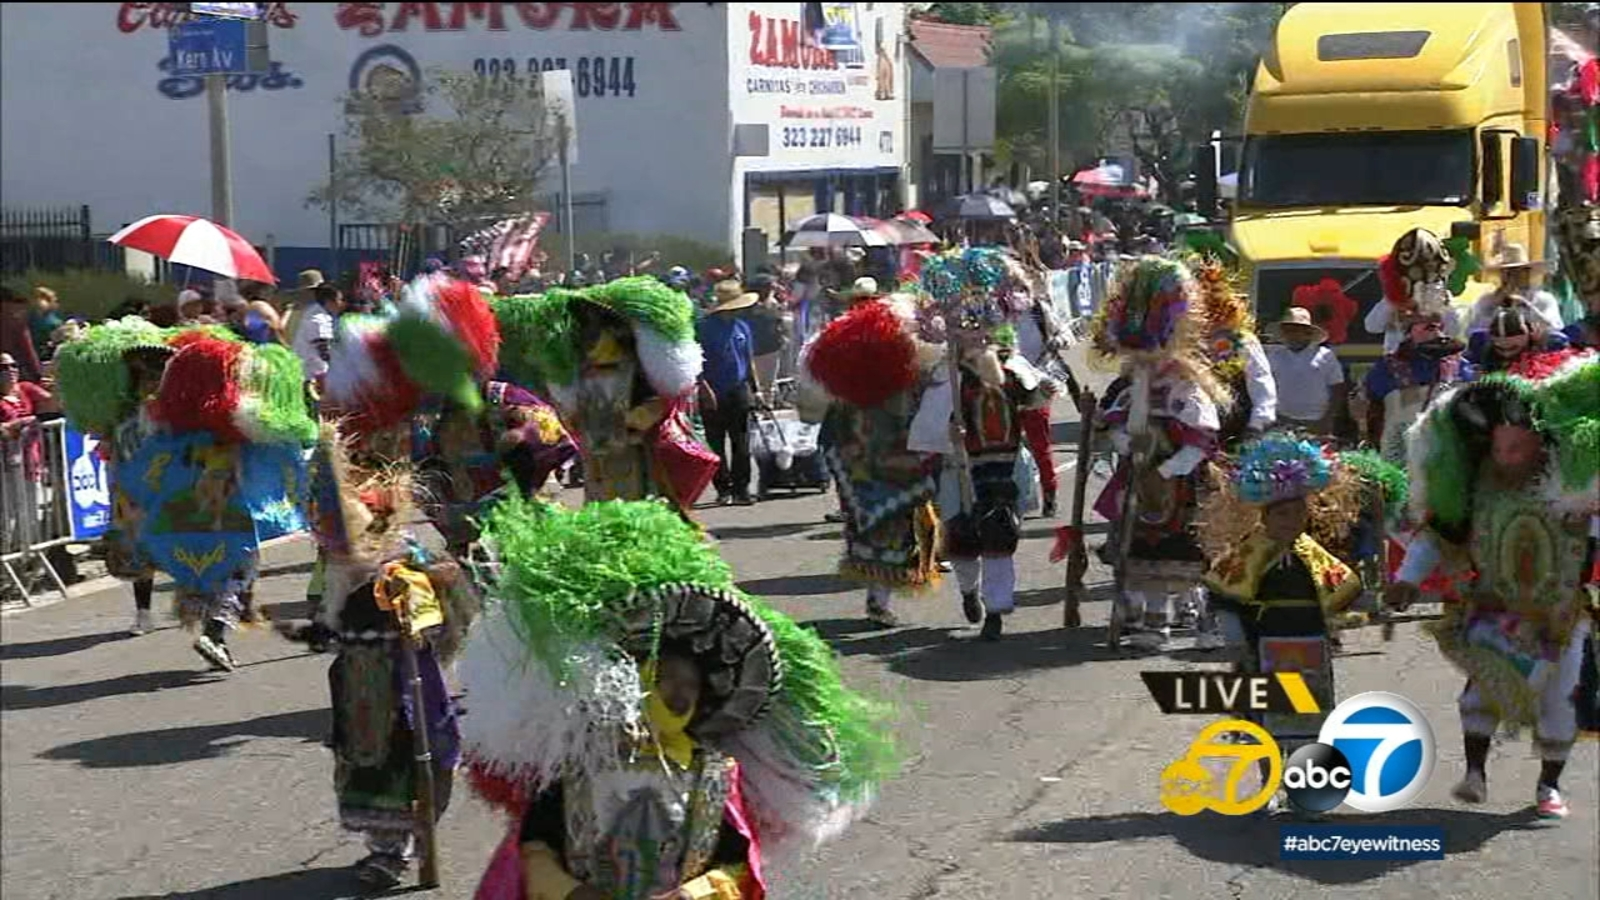 East LA Mexican Independence Day parade boasts vibrant colors and pride of culture